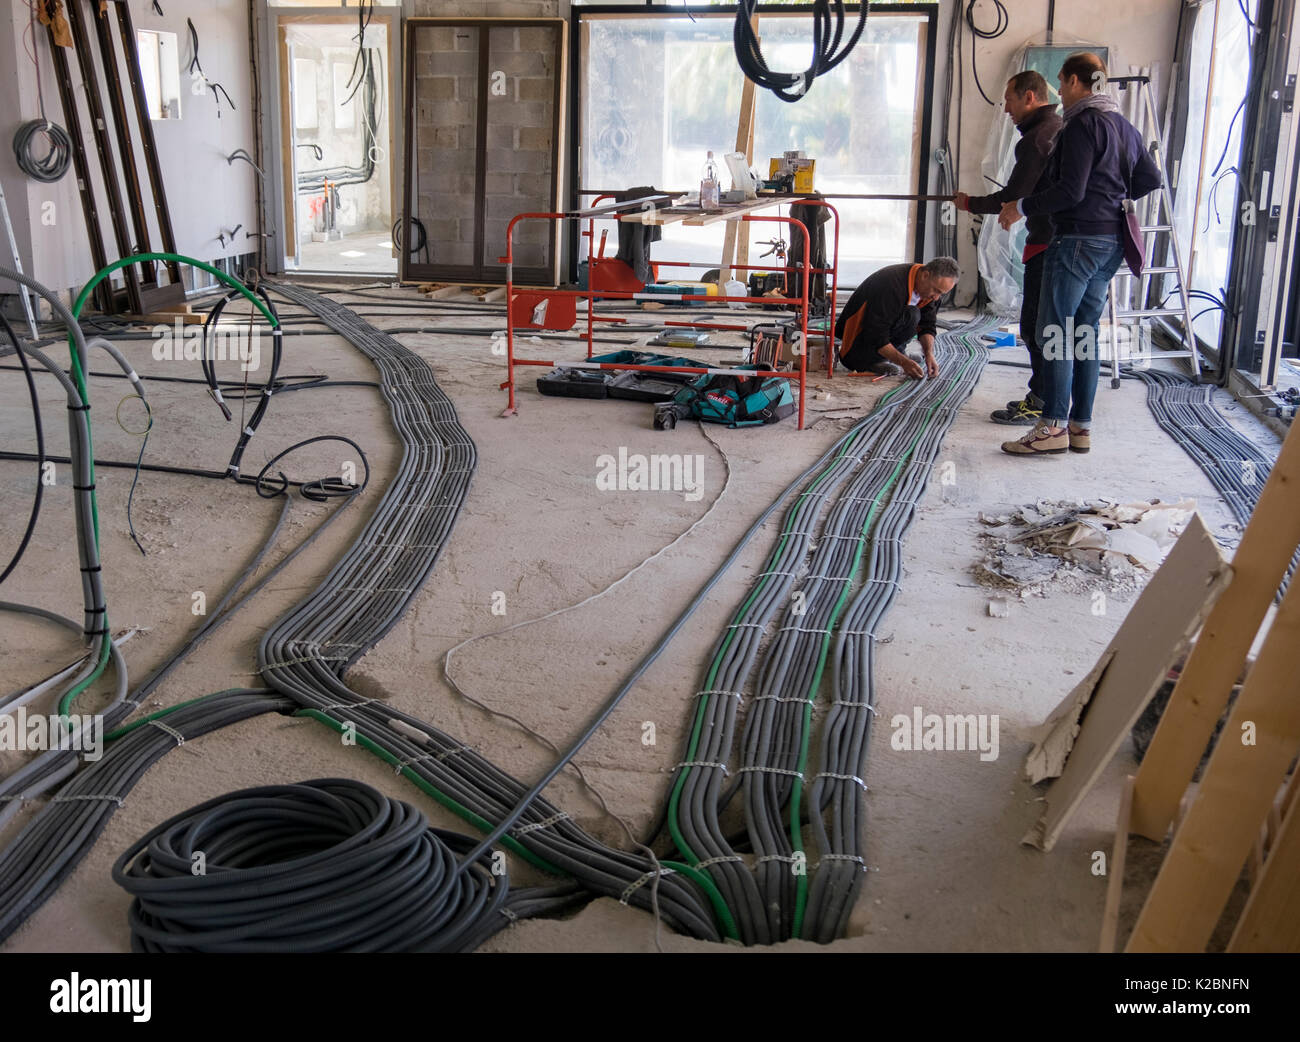 hight resolution of layout of electrical wiring in the construction of a new home in provence france